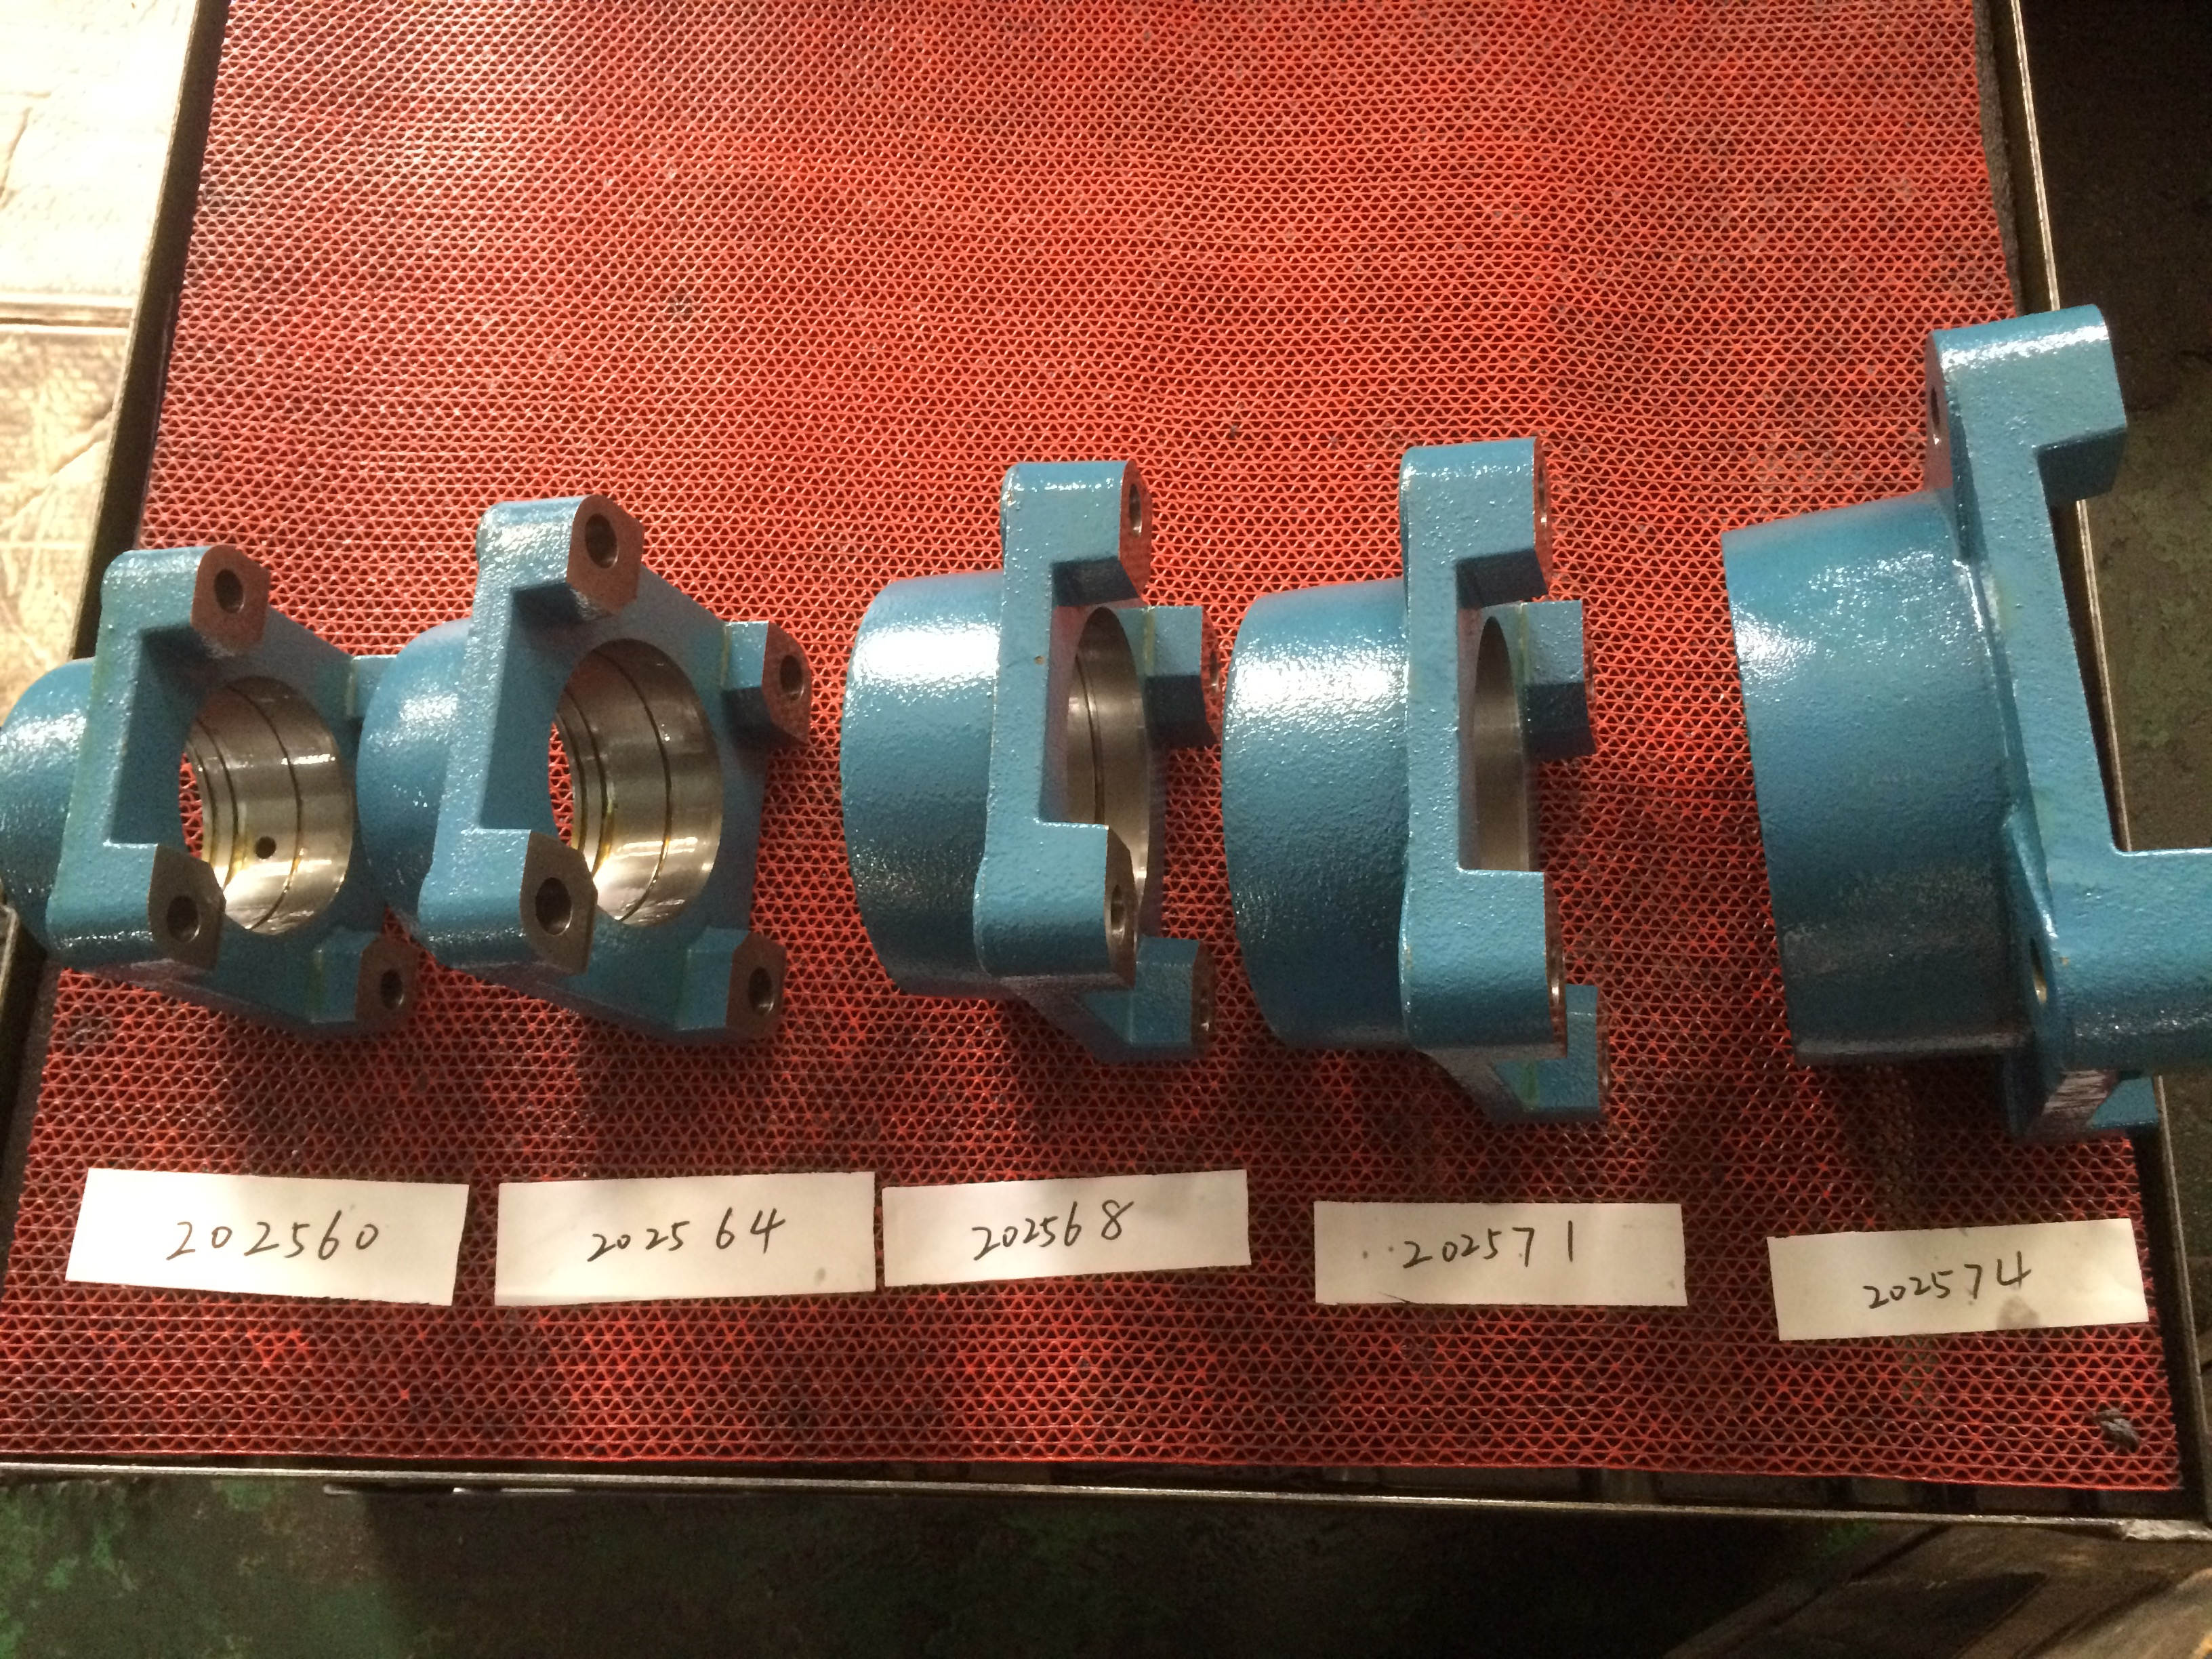 4 Bolt Square Flange Housing Series